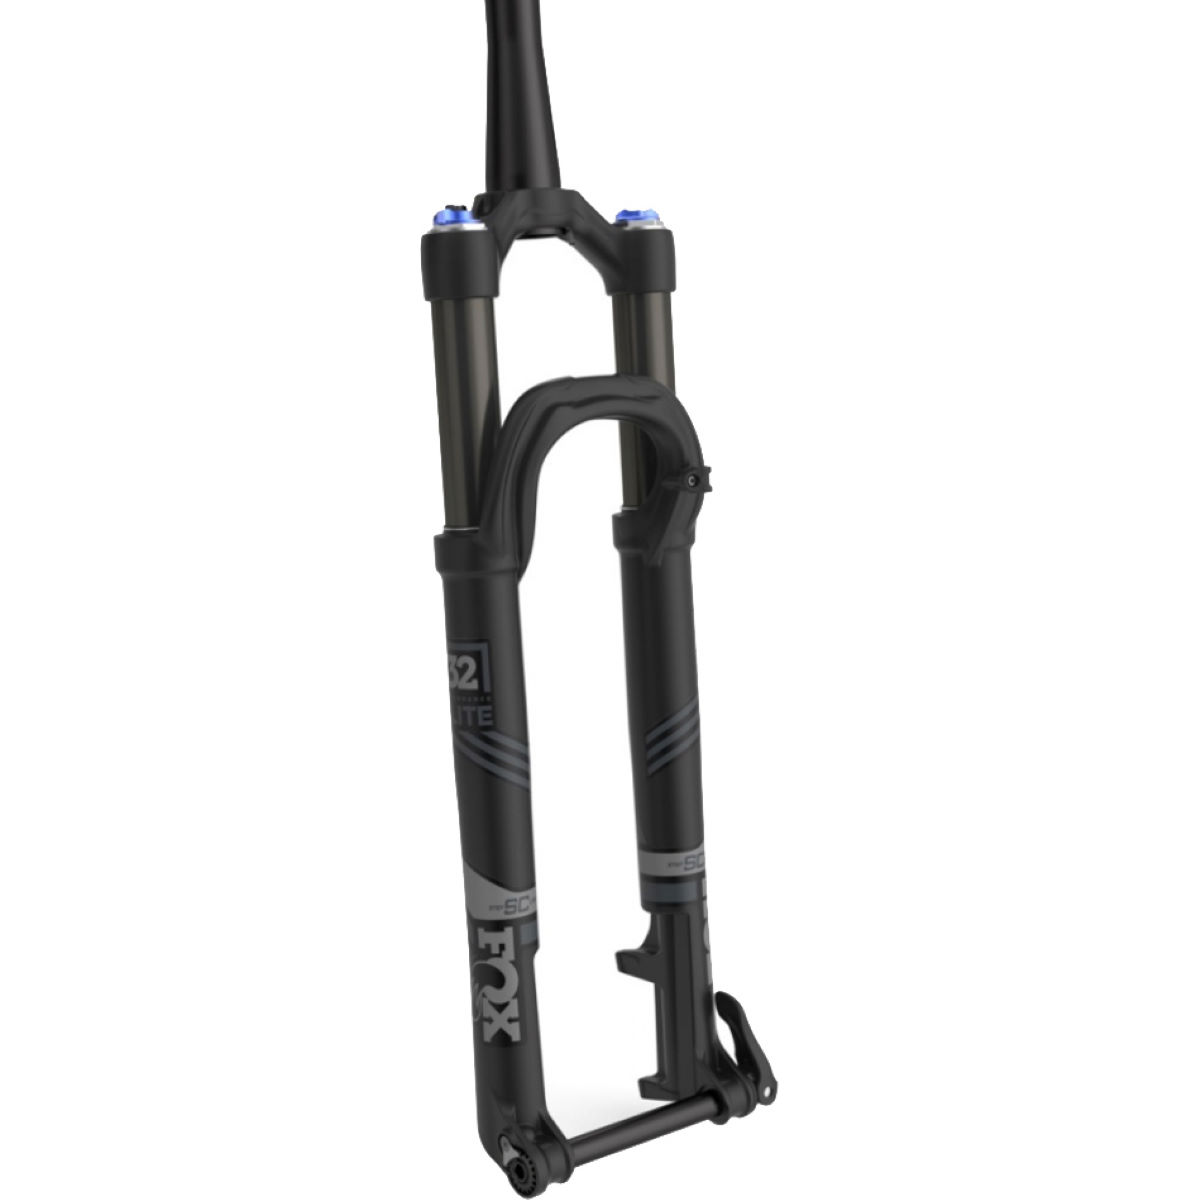 Fox Suspension 32 Float Perf Elite Forks - Boost - Horquillas de suspensión